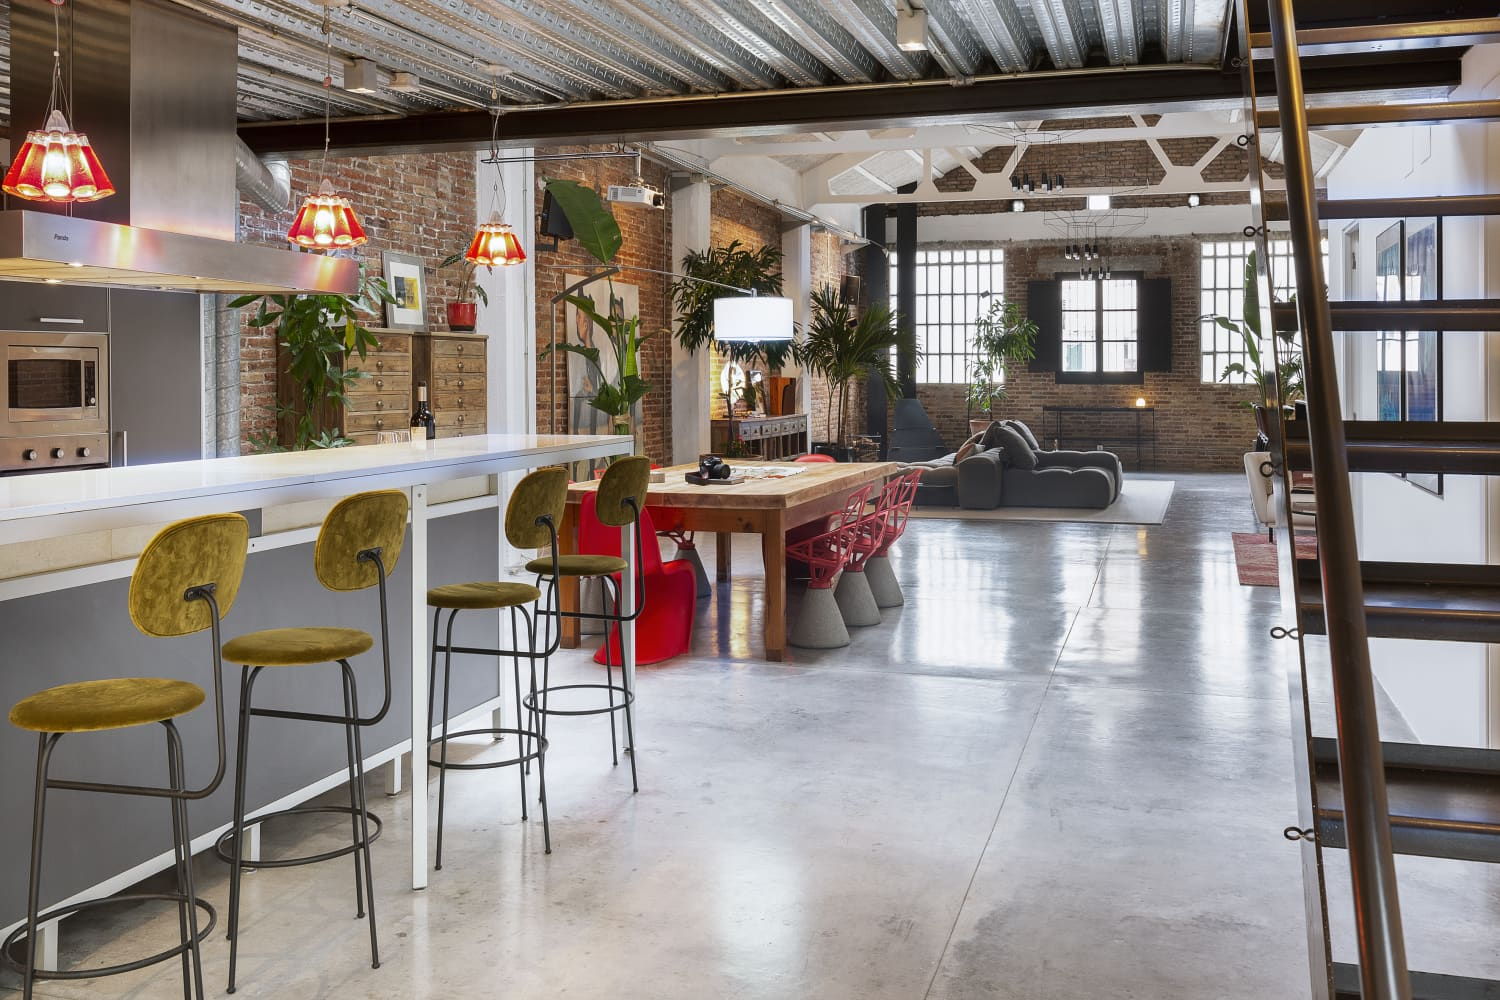 This Cool Spanish Home Makes a Stylish Case for Modern Loft Living